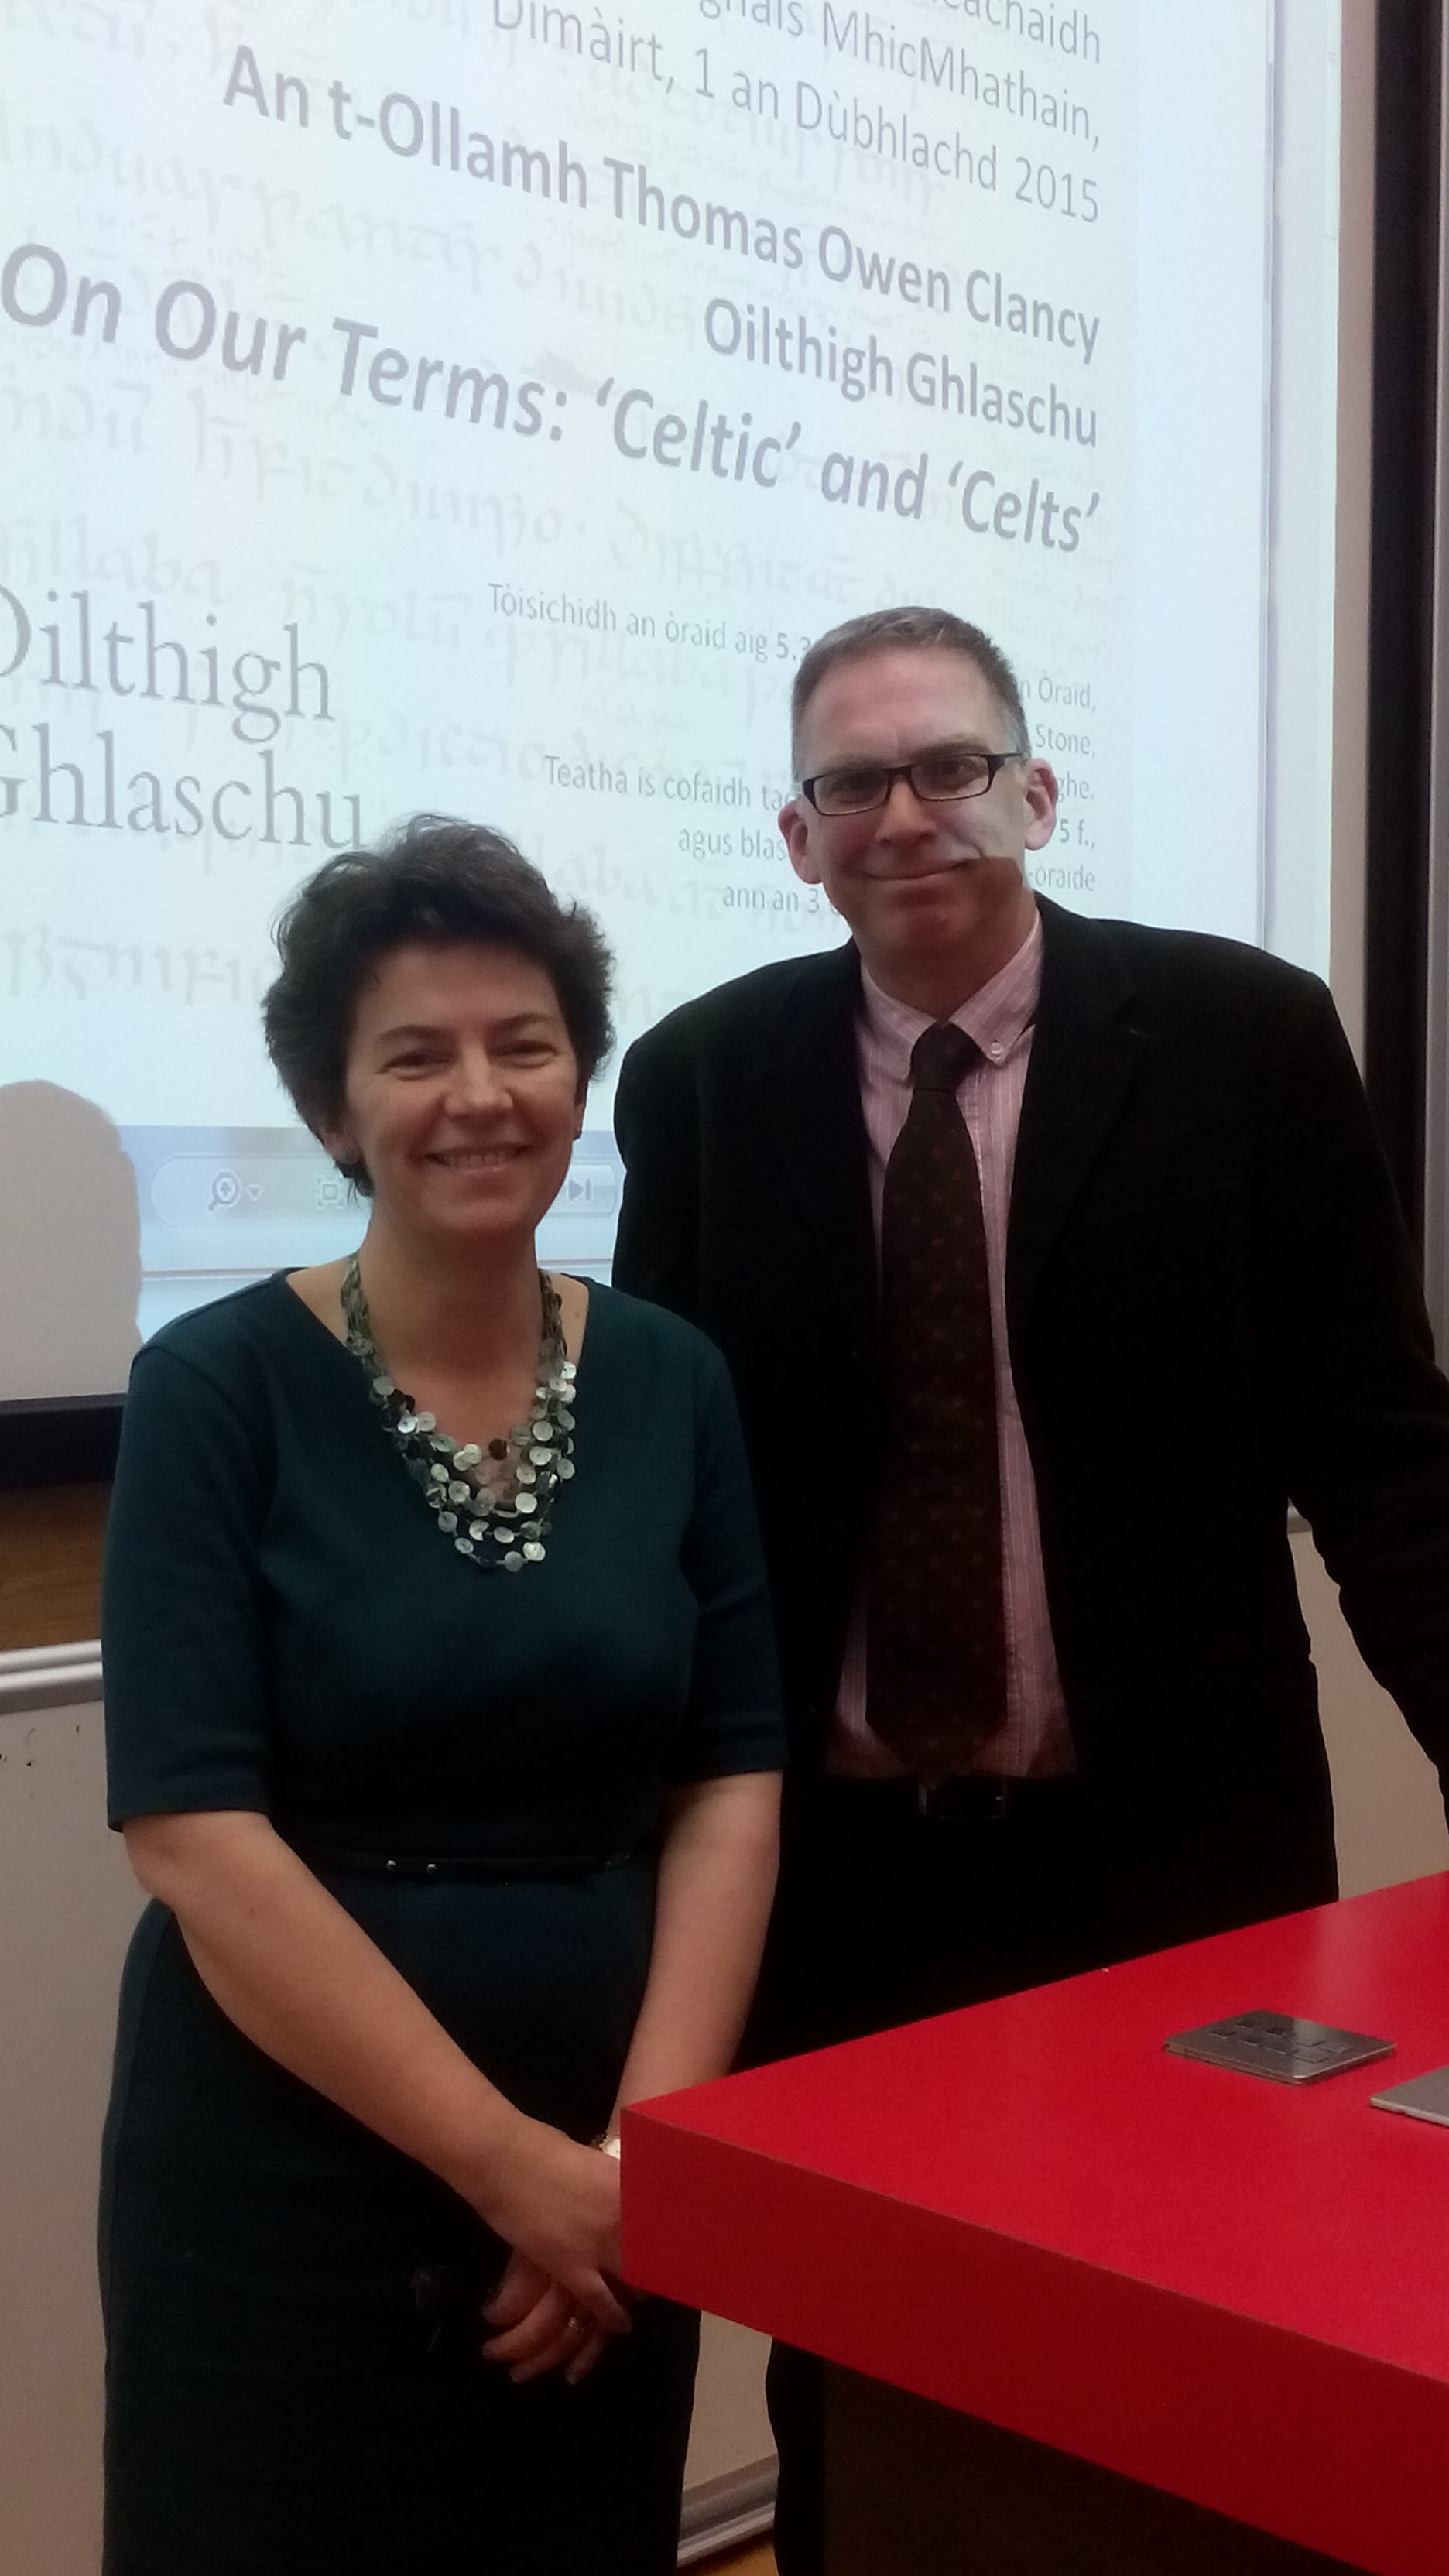 Prof Thomas Owen Clancy with Dr. Katherine Forsyth at the 10th Annual Angus Matheson Memorial Lecture.